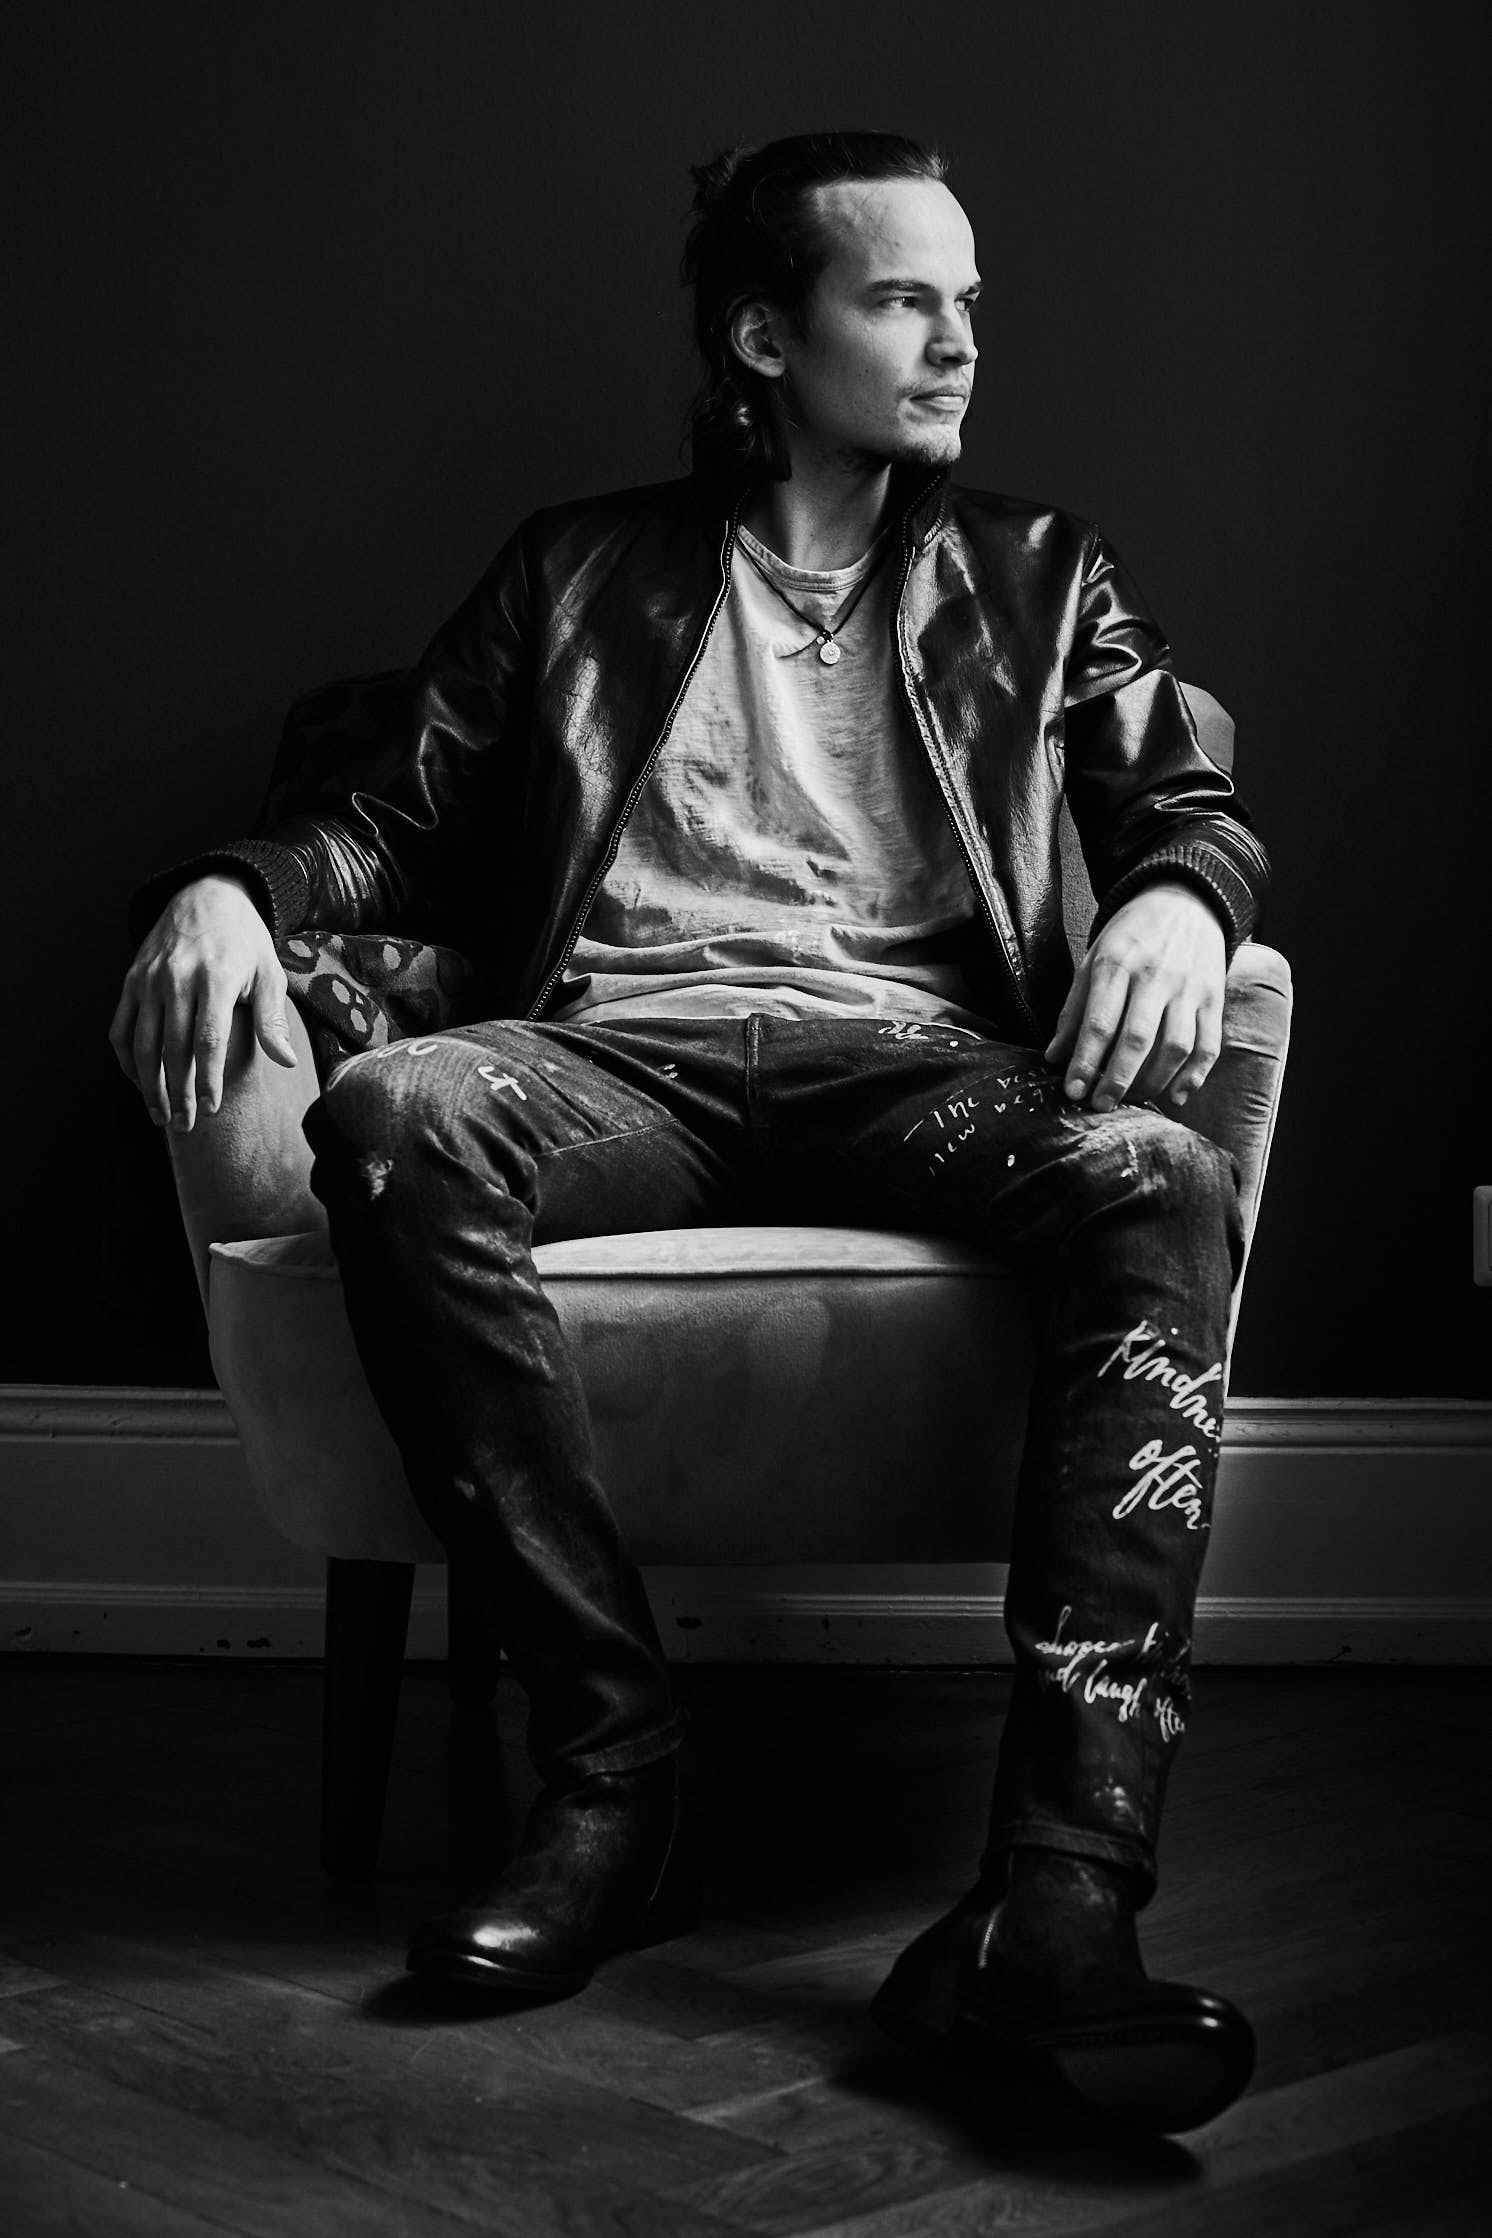 Young man in a leather jacket sitting on a chair, Philipp Burkart, young Photographer in Hamburg, Fashion shooting Natural Light